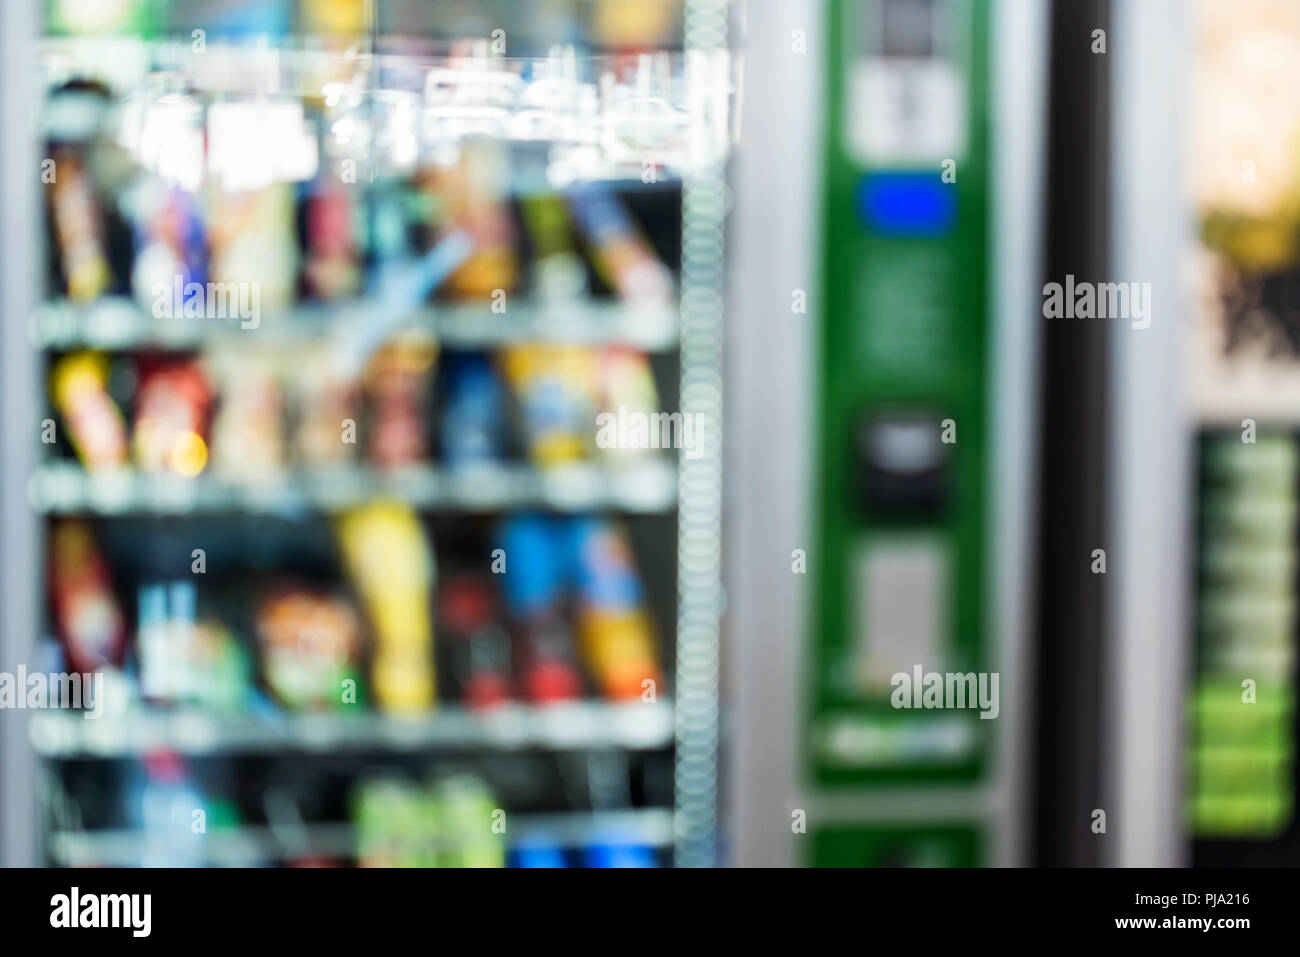 Blurred image of vending machine with snacks - Stock Image